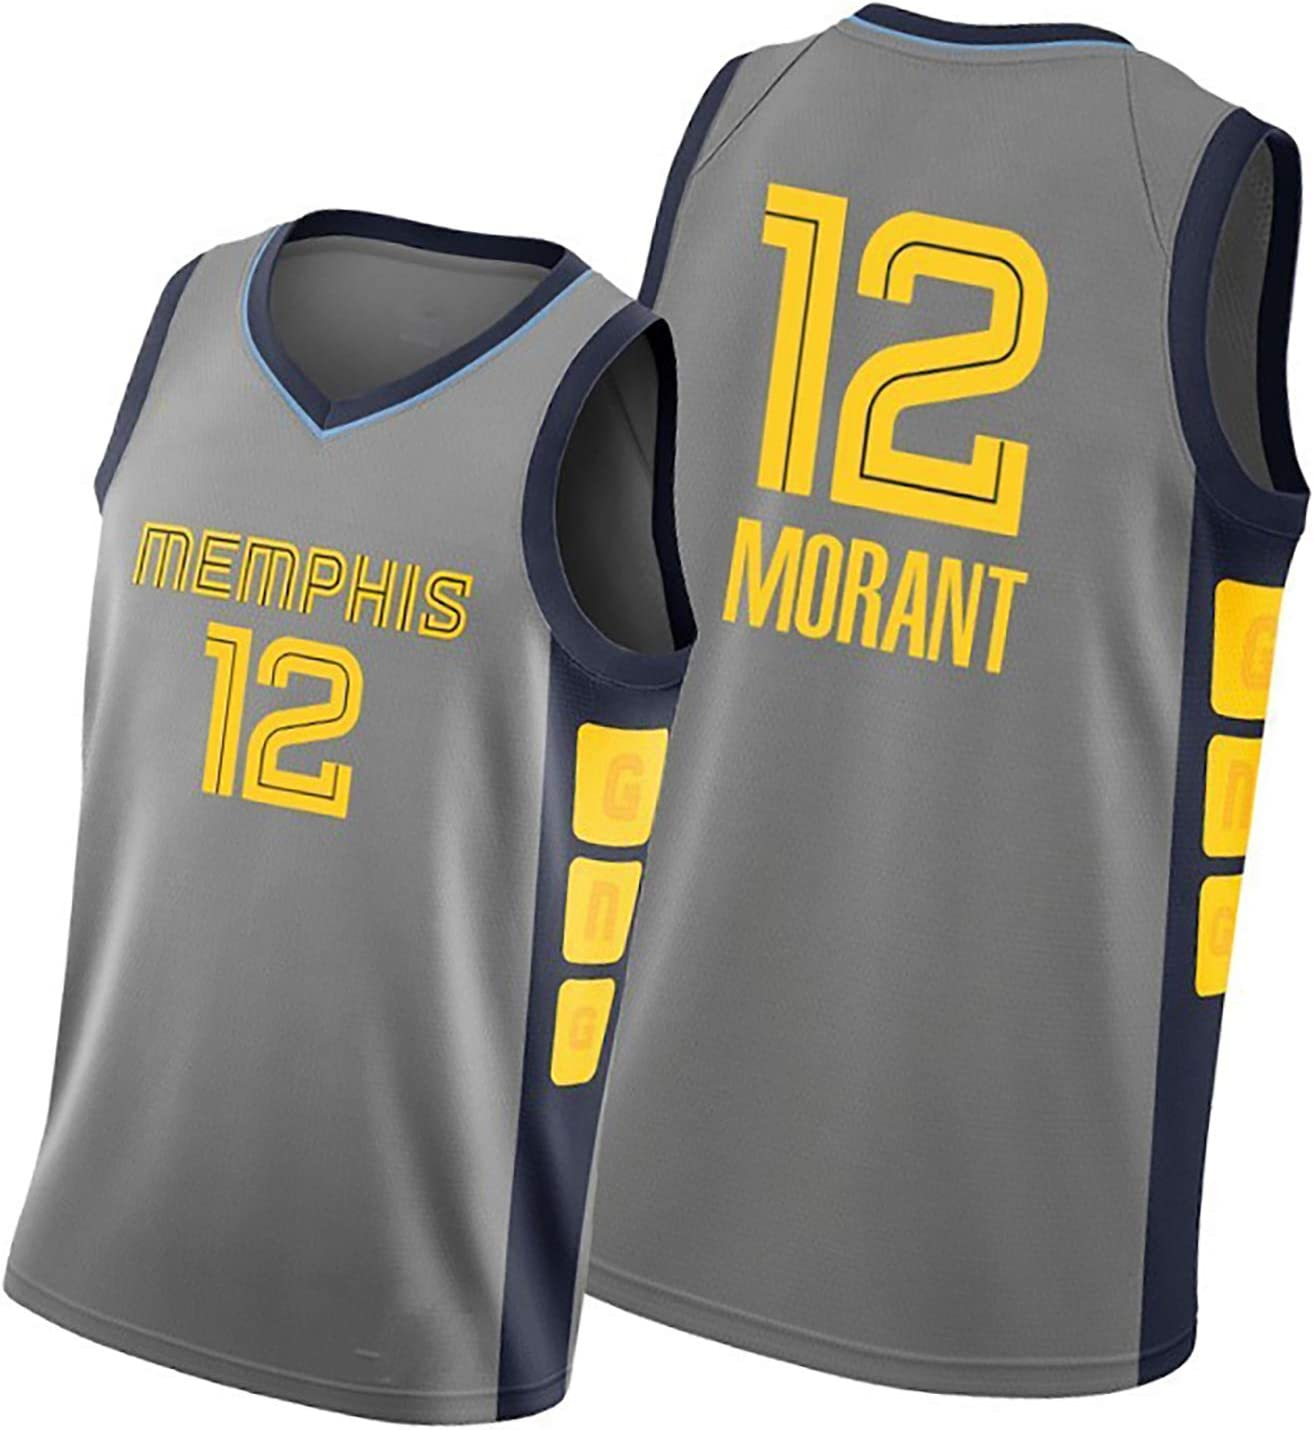 Basketball Game Training Clothes Can Be Washed Repeatedly Real Jerseys Suitable for Morant 12 Number Basketball Jersey Mens and Womens Basketball Jerseys